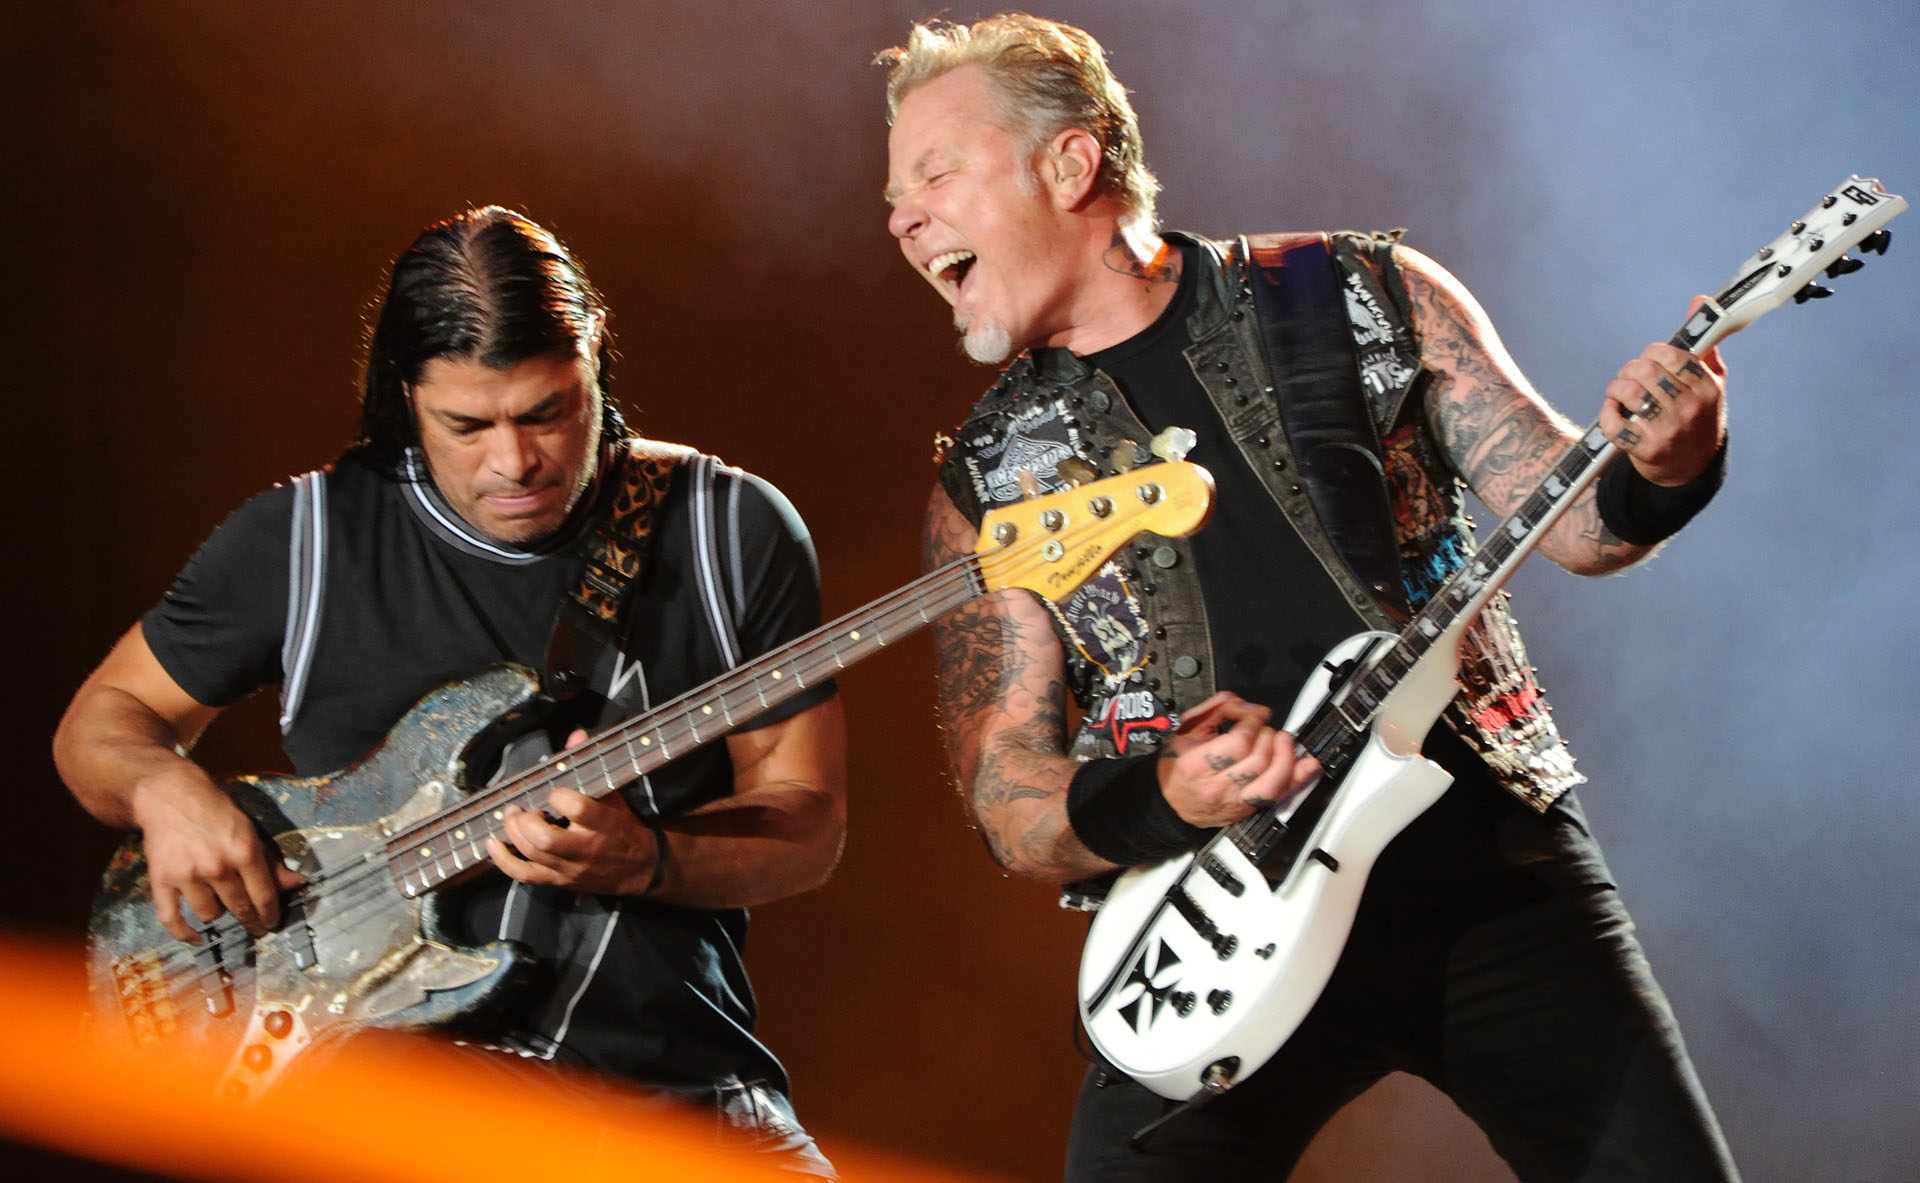 Robert Trujillo (L) and James Hetfield of Metallica perform on the second day of the Rock in Rio music festival in Rio de Janeiro, on September 19, 2015. AFP PHOTO/ TASSO MARCELO